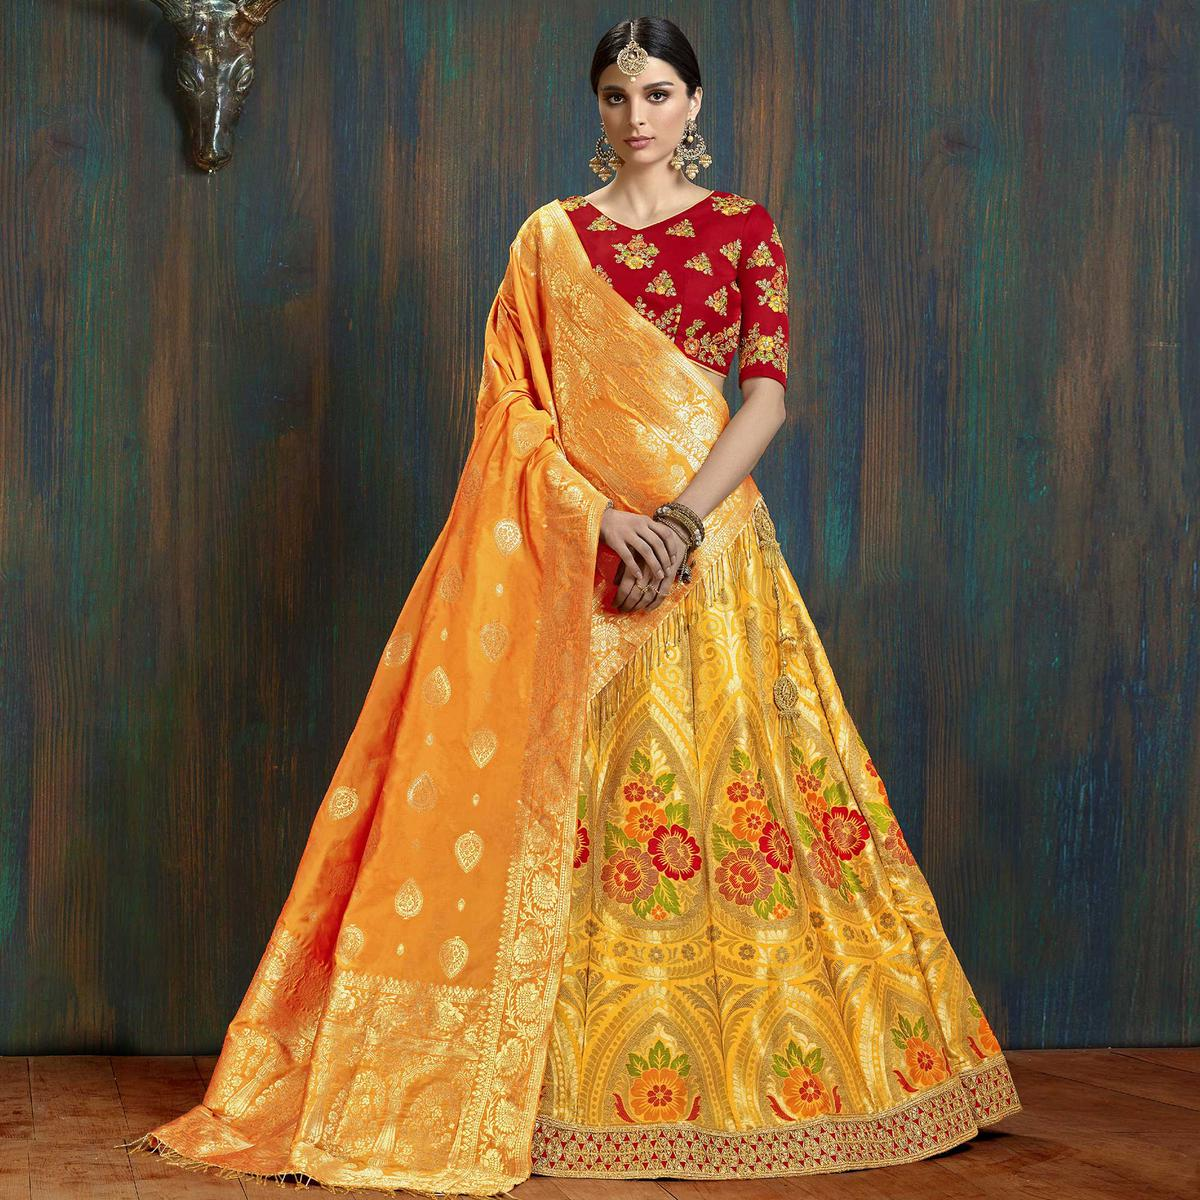 Eye-catching Yellow Colored Wedding Wear Embroidered Pure Banarasi Silk Lehenga Choli